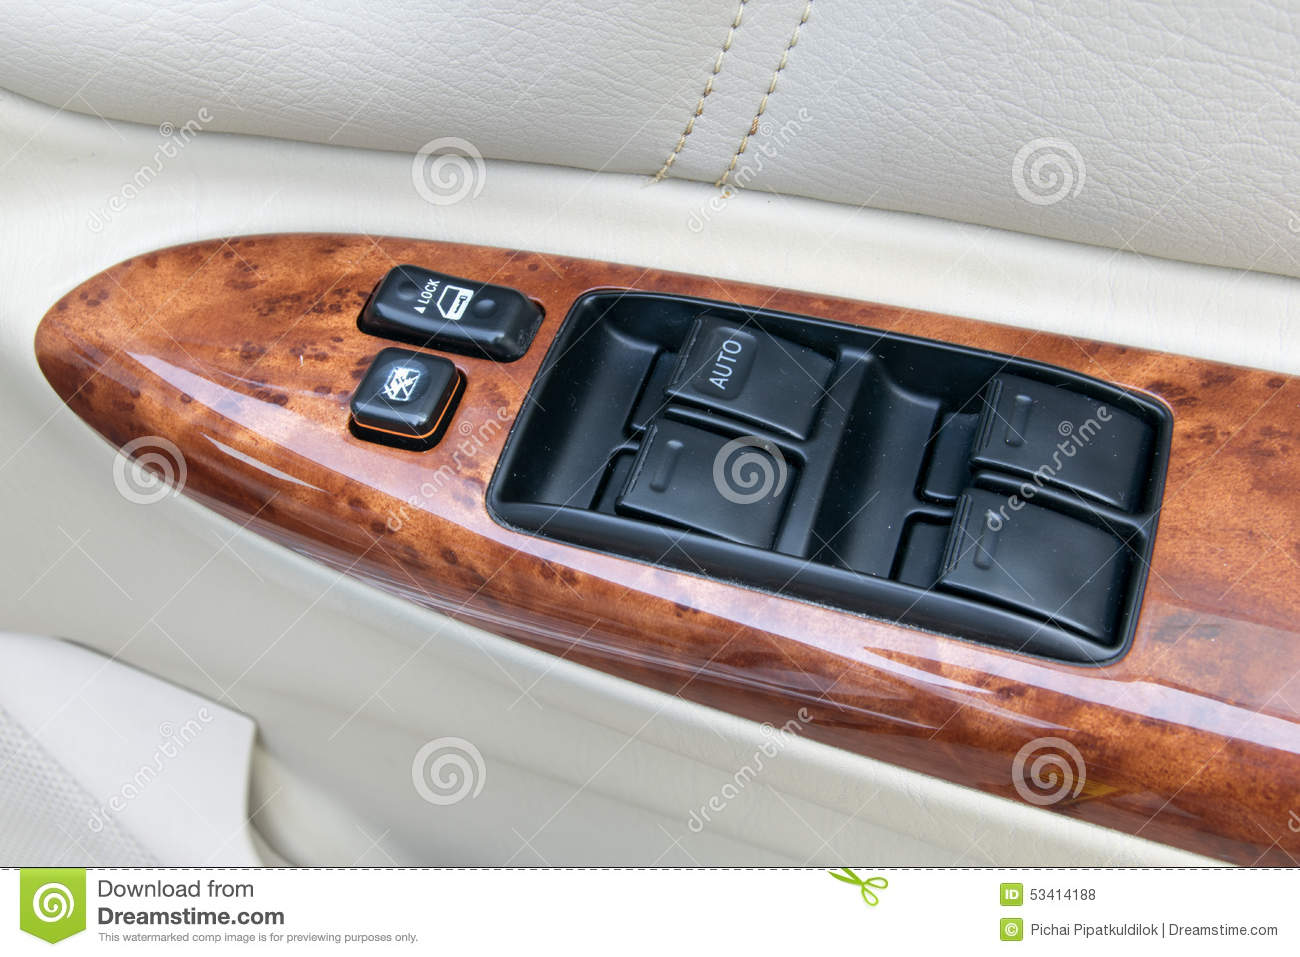 car interior details of door handle with windows controls and ad stock photo image of detail. Black Bedroom Furniture Sets. Home Design Ideas